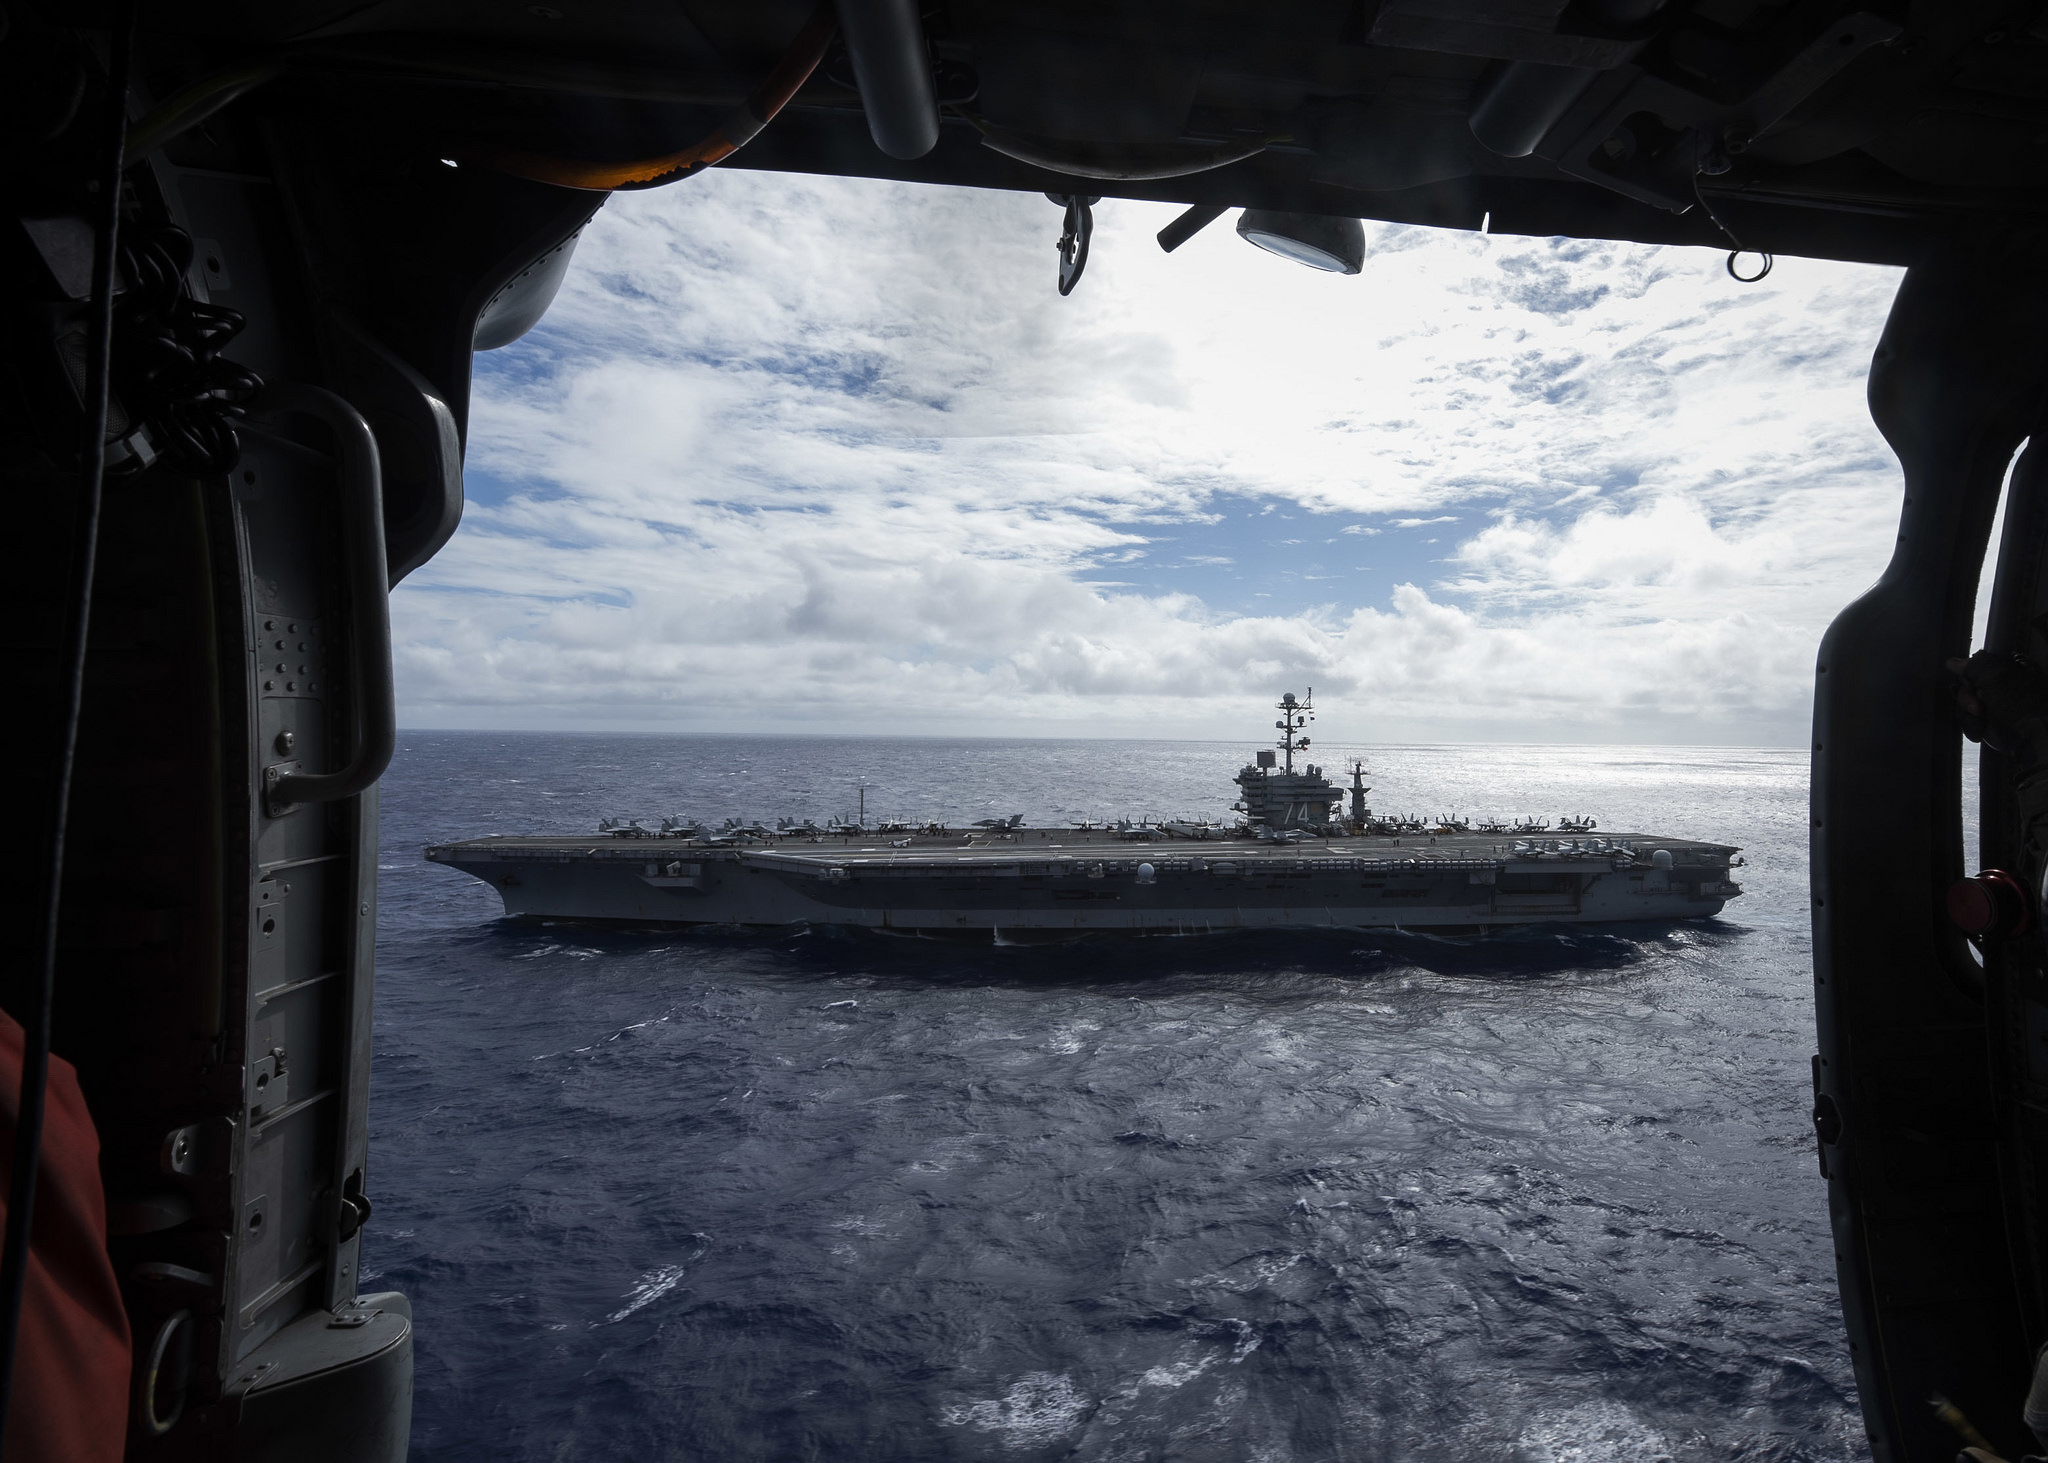 The Nimitz-class aircraft carrier USS John C. Stennis (CVN 74) transits the Pacific Ocean on Nov. 9, 2018. (MC3 Connor D. Loessin/Navy)